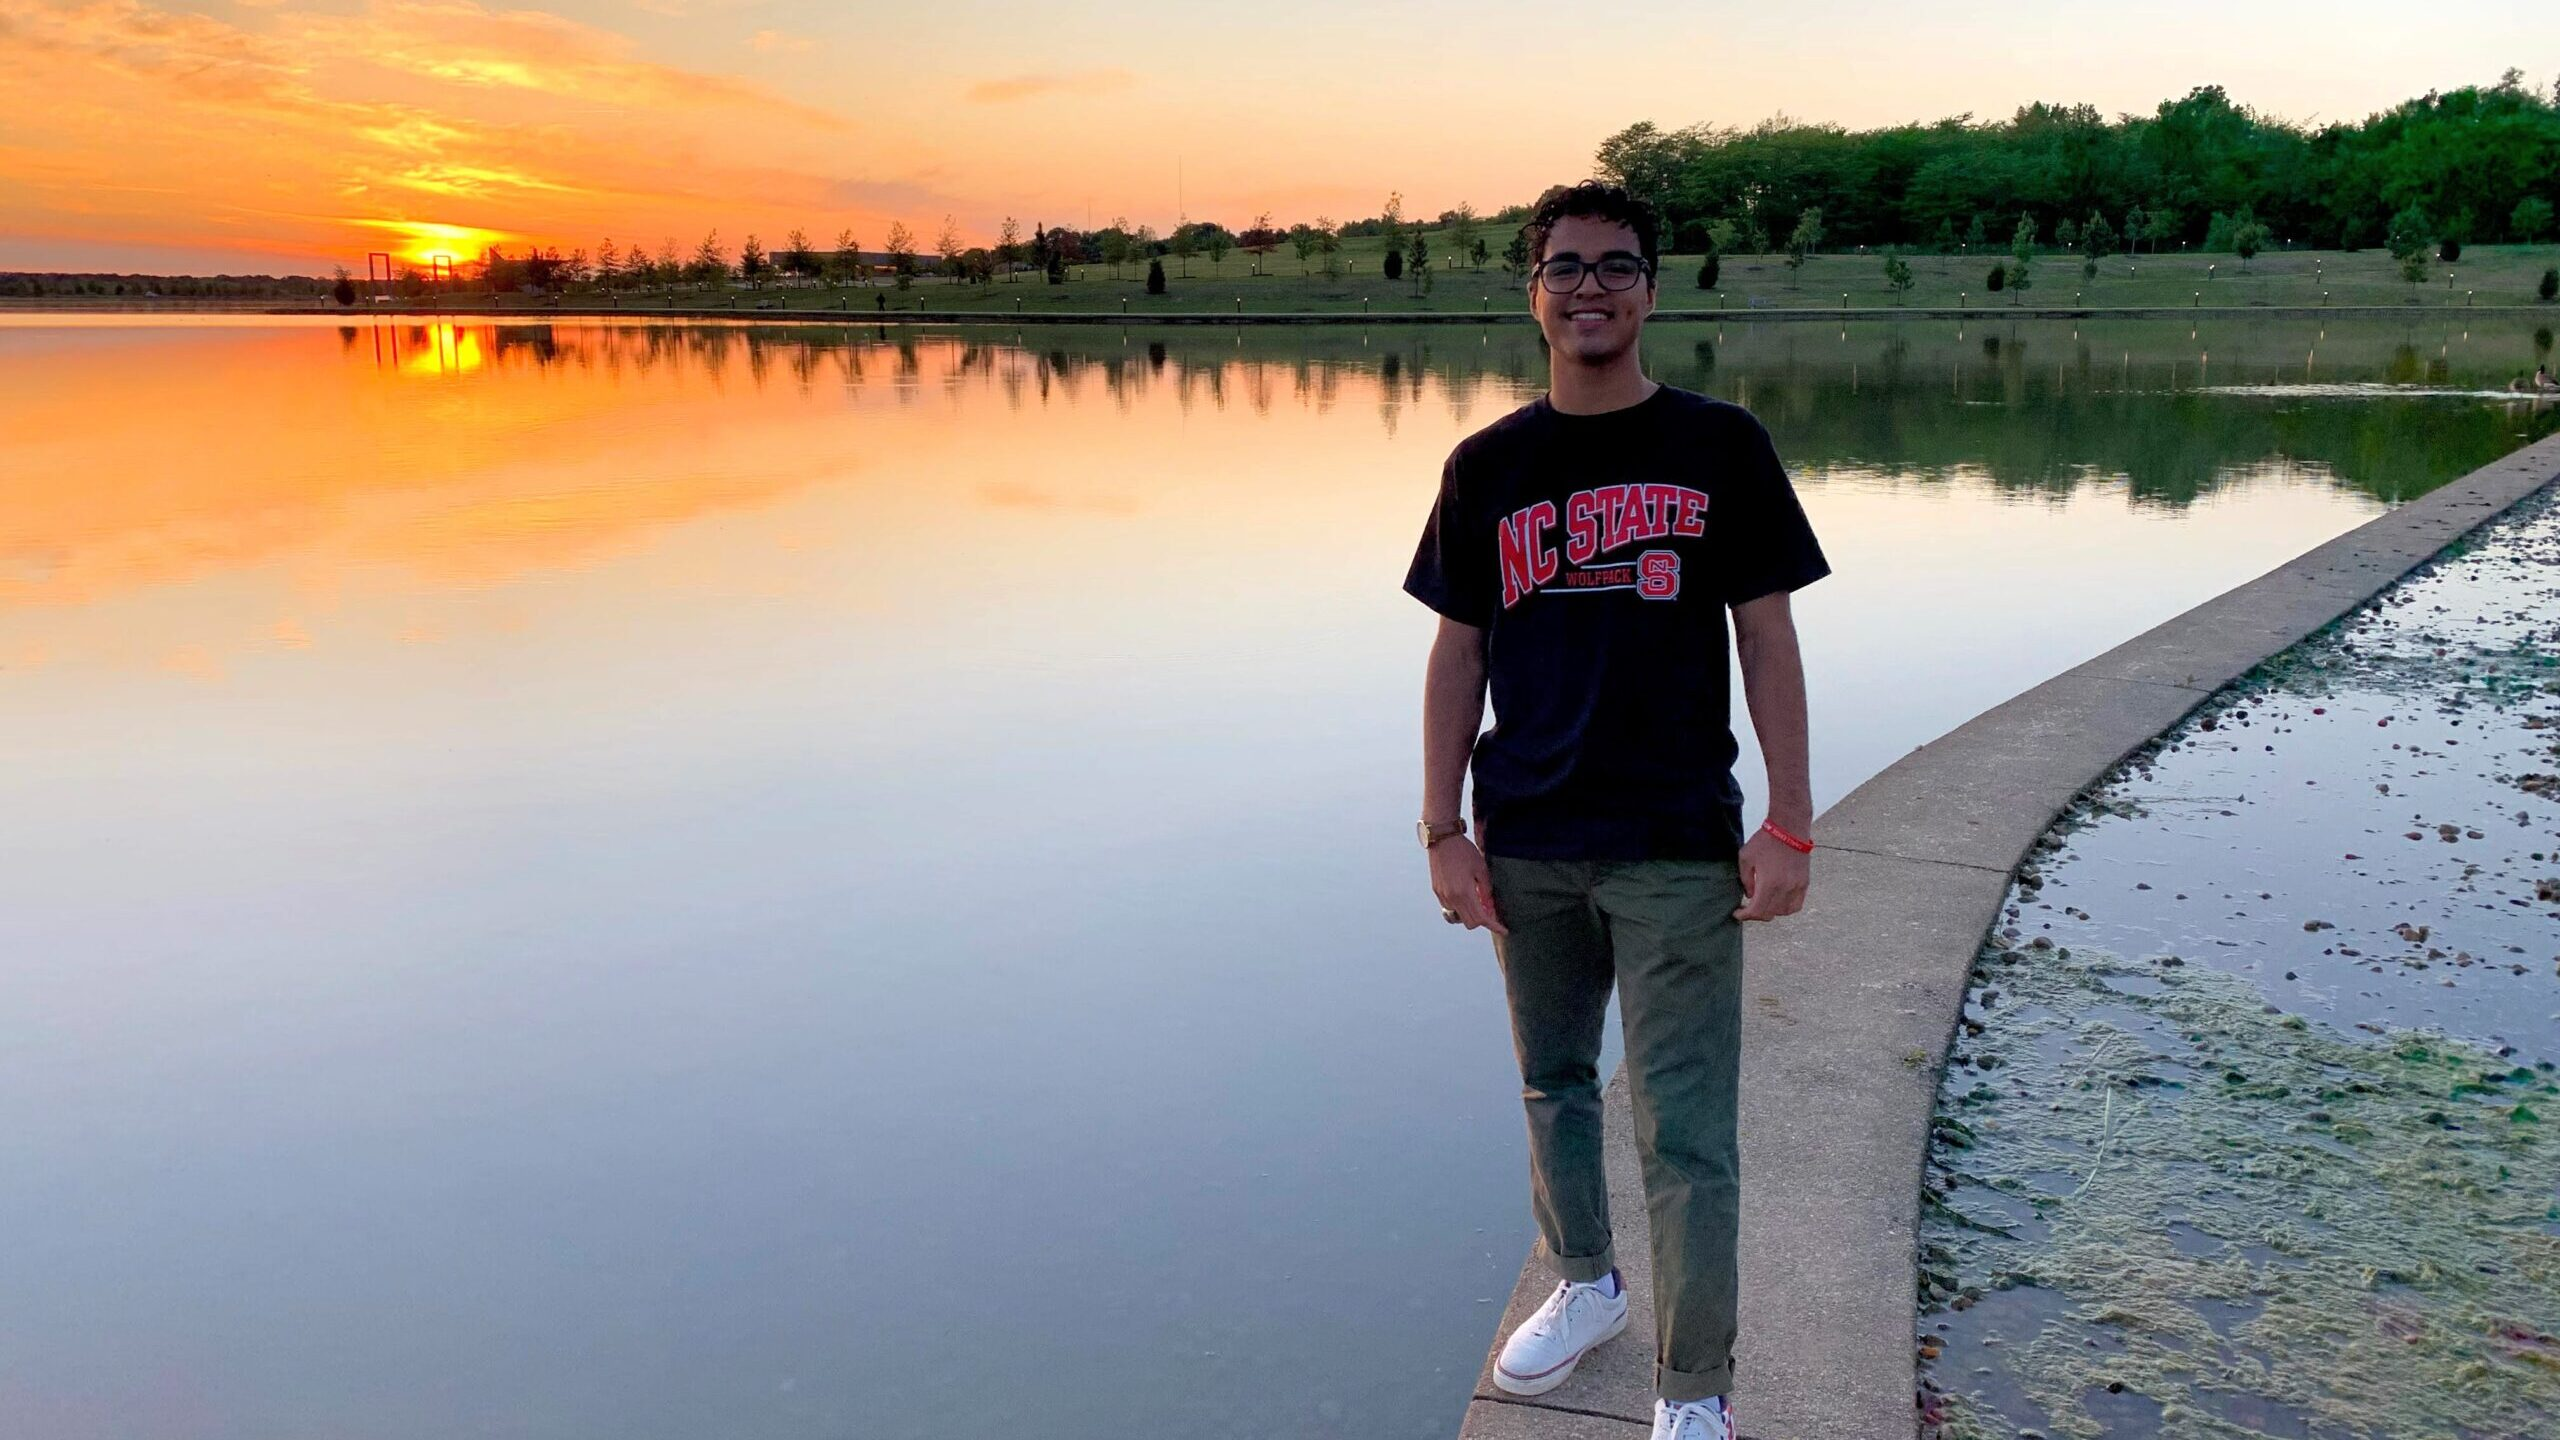 Kelvin Borges Near a Lake - Student Spotlight - Kelvin Borges - Forest Biomaterials at NC State University